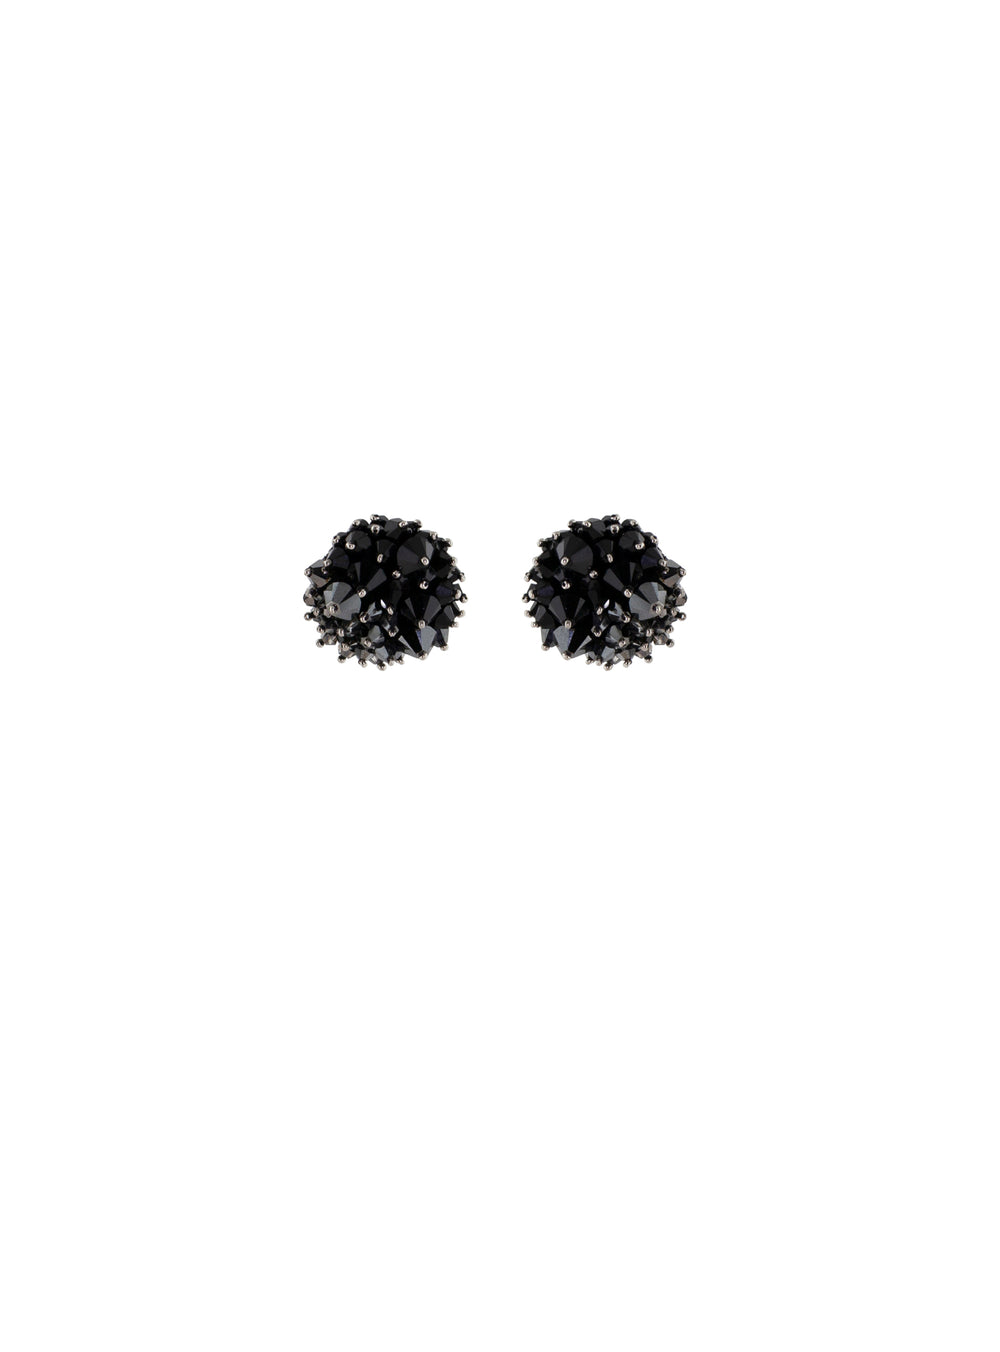 2 mini degrade earrings